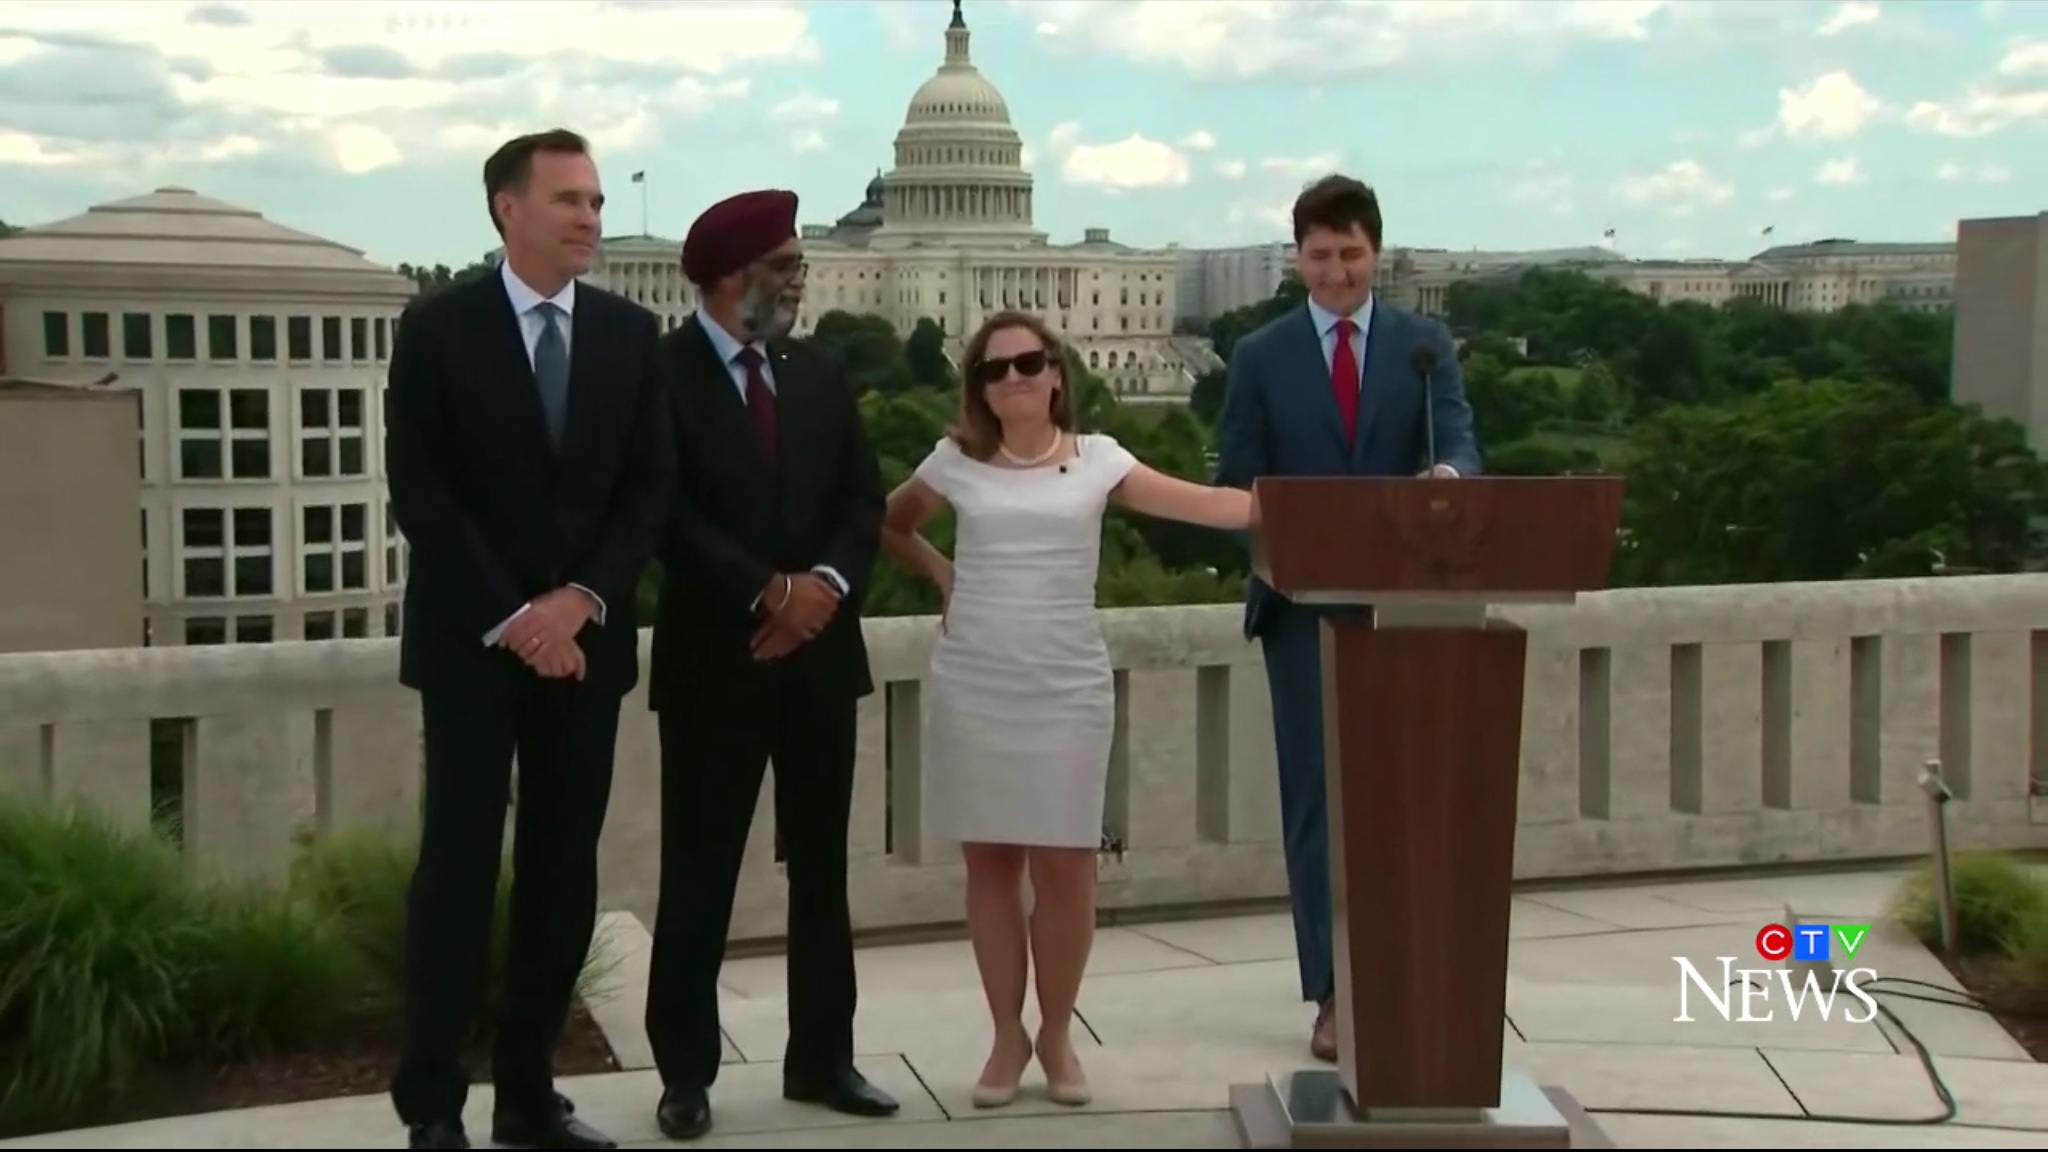 From left to right: Canadian Finance Minister Bill Morneau, Defense Minister Harjit Saajan, Foreign Affairs Minister Chrystia Freeland and Prime Minister Justin Trudeau prepare for news conference at the Canadian Embassy in Washington, D.C., June 20 2019. CTV News screenshot.